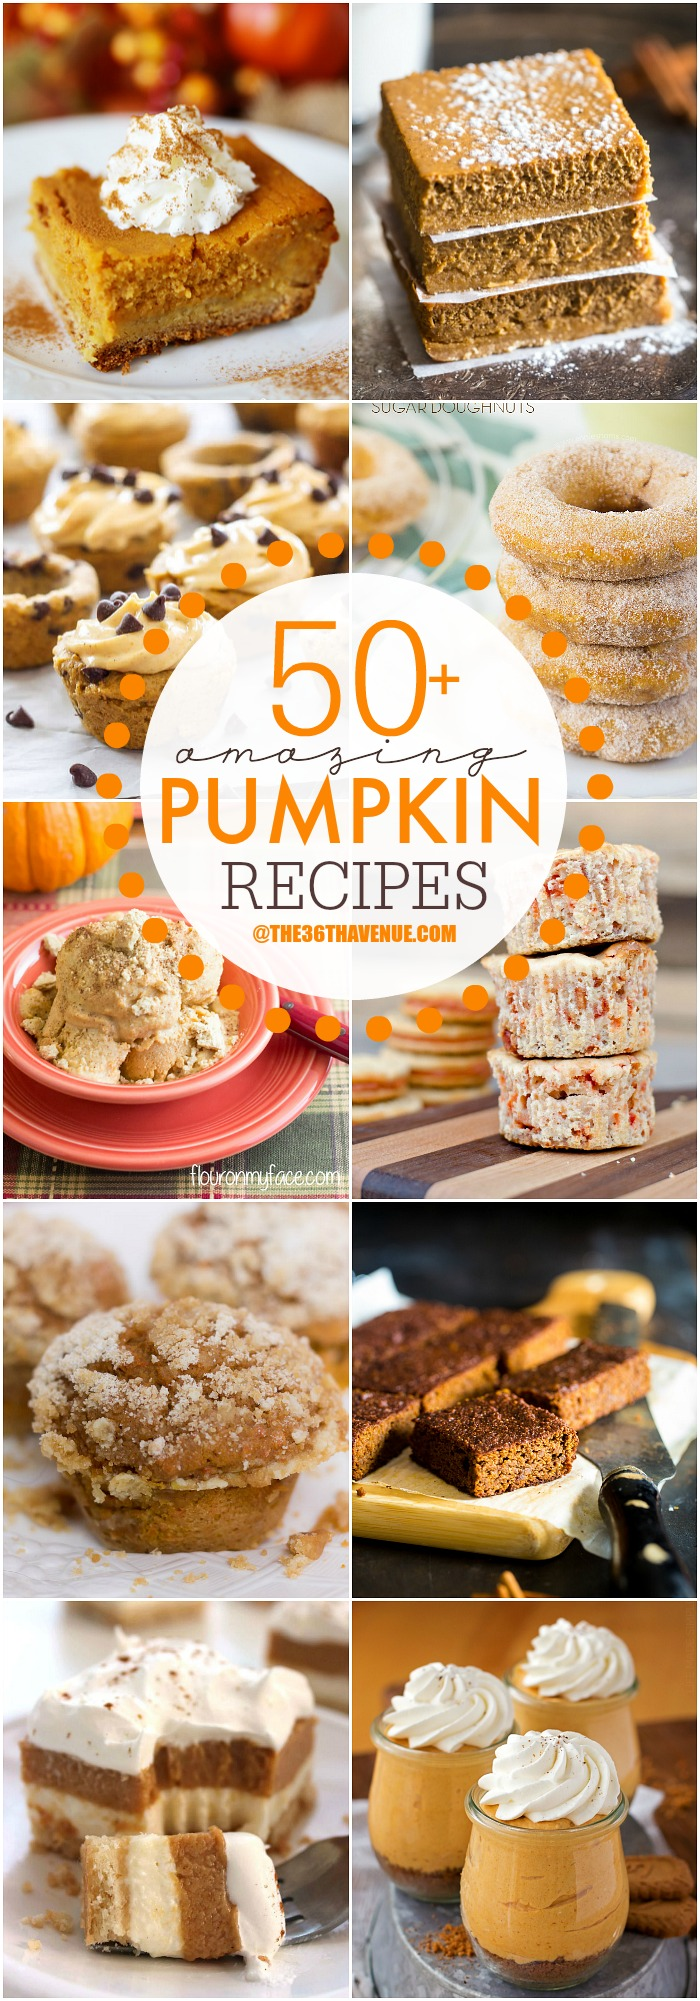 Pumpkin Recipes for Fall the36thavenue.com